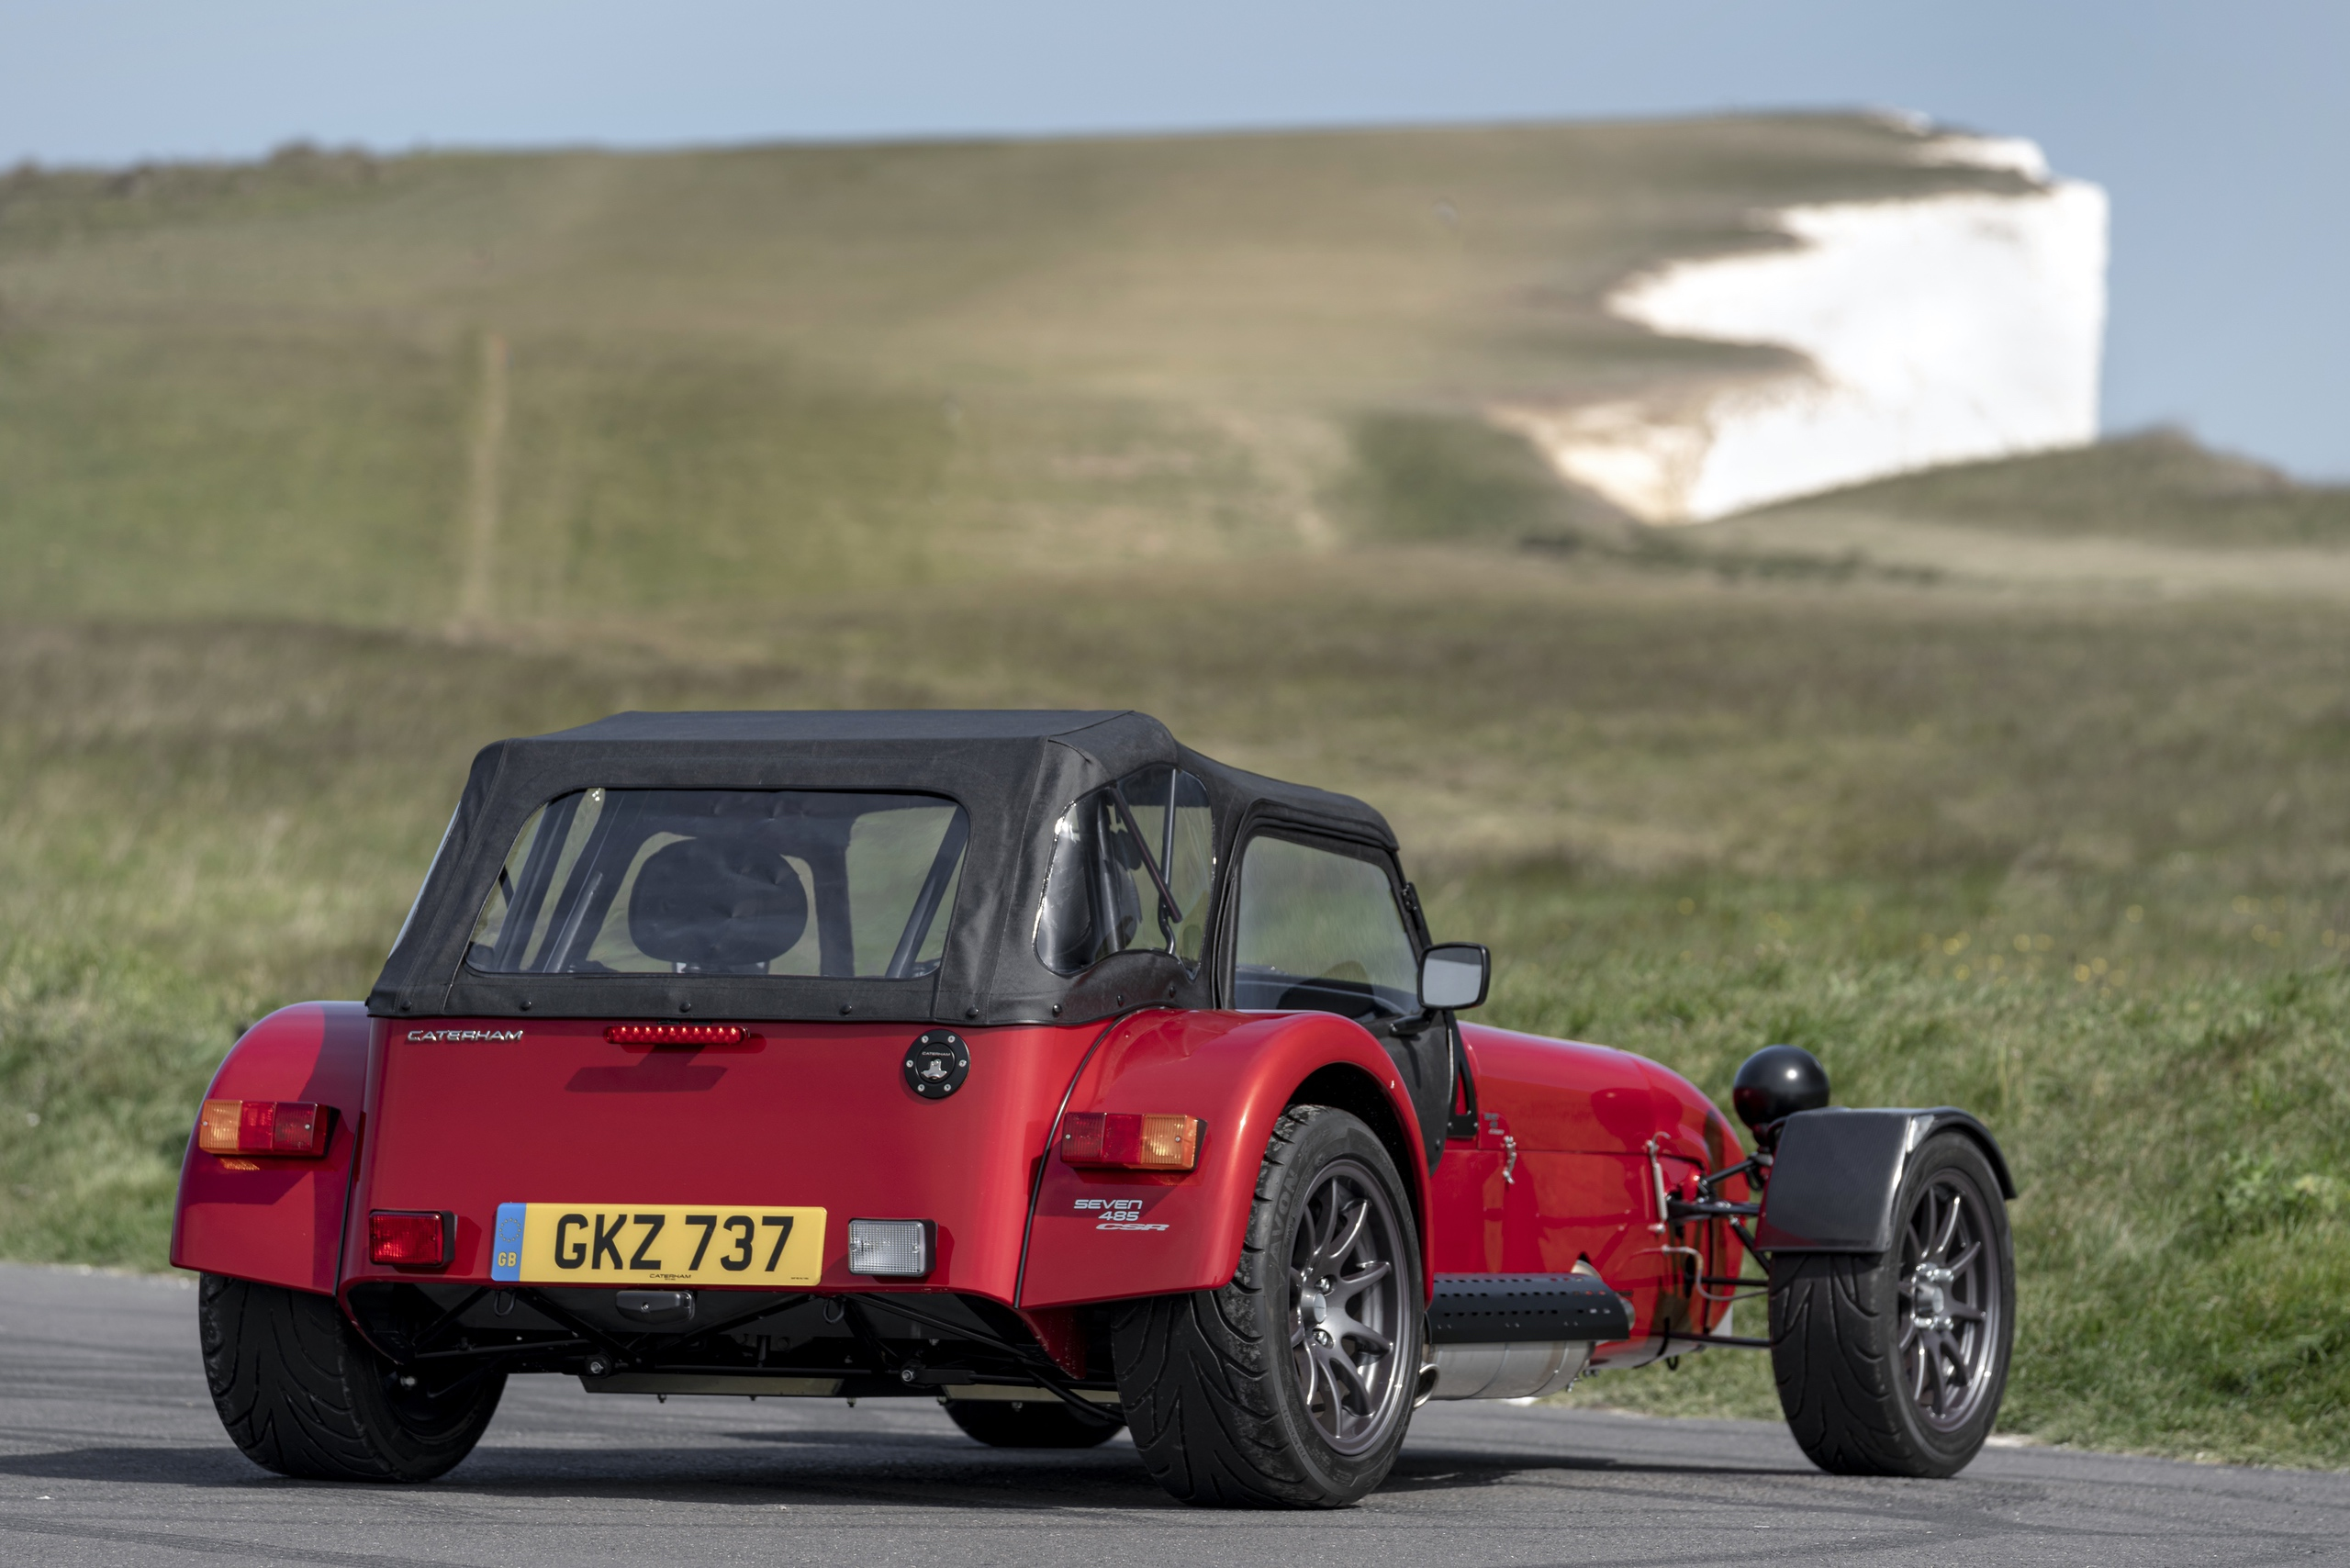 Caterham-485-CSR-®-Photo-Max-Earey-216